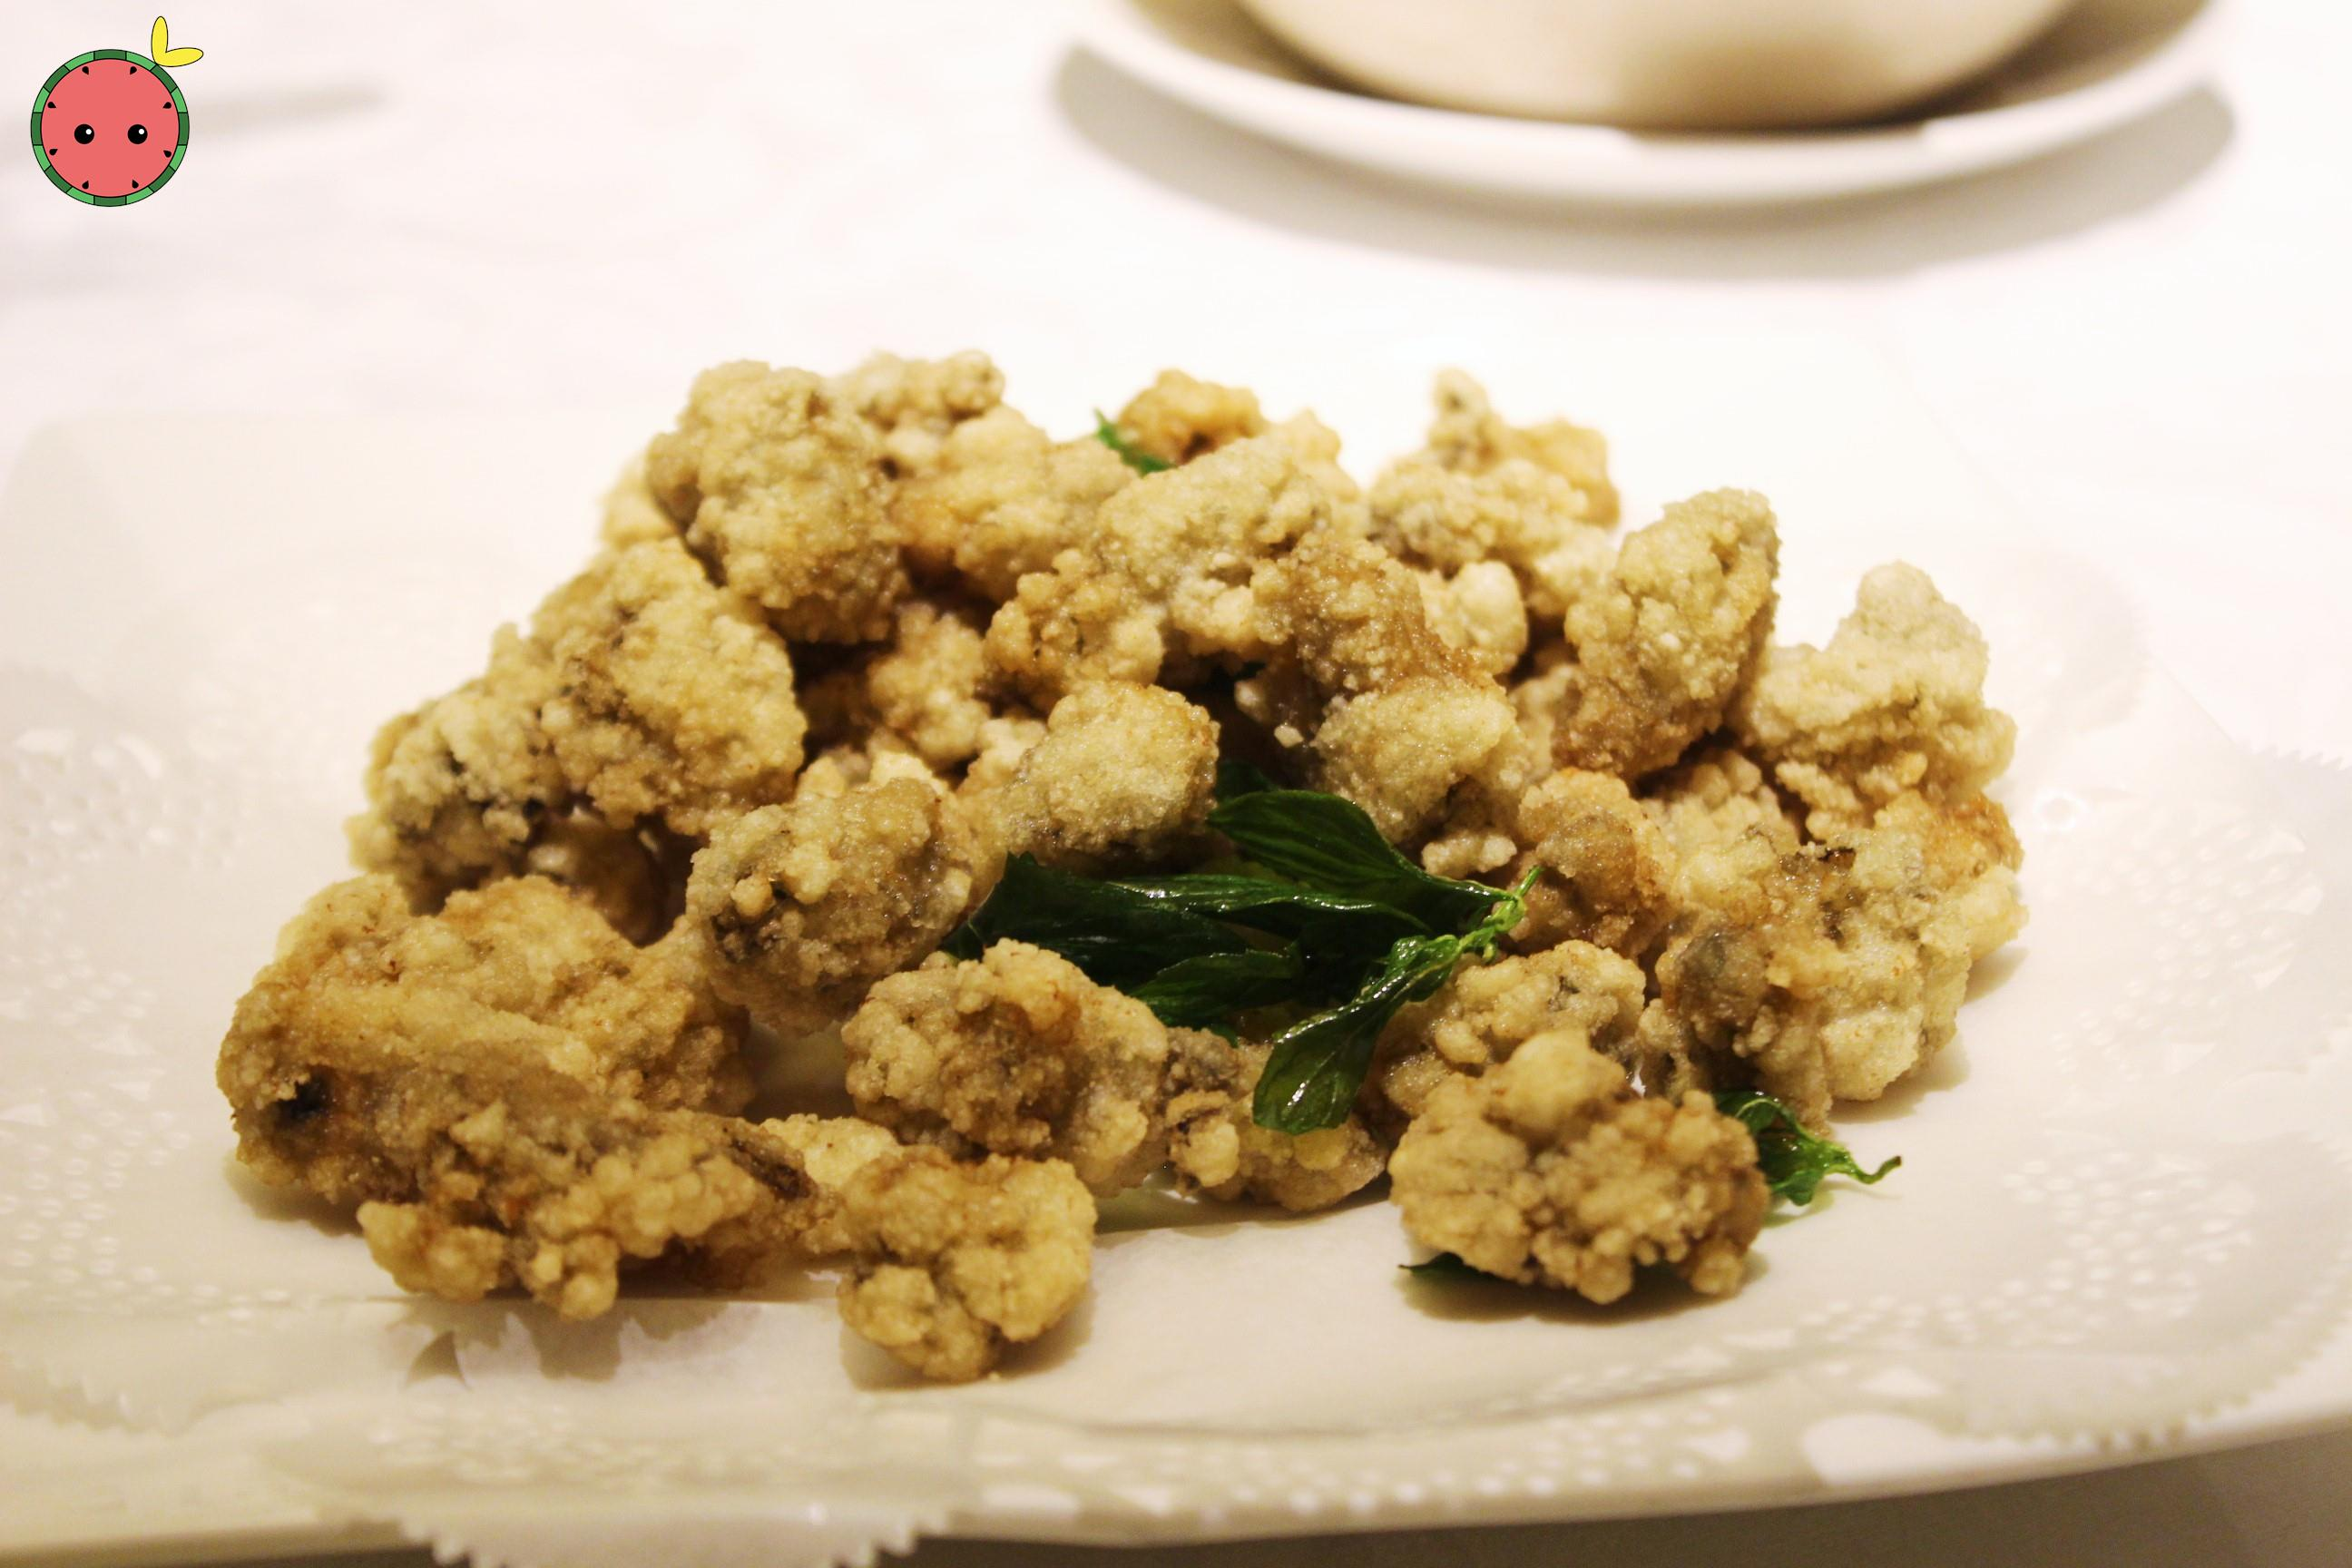 Crispy fried fresh oyster with dip 台式炸蚵仔酥